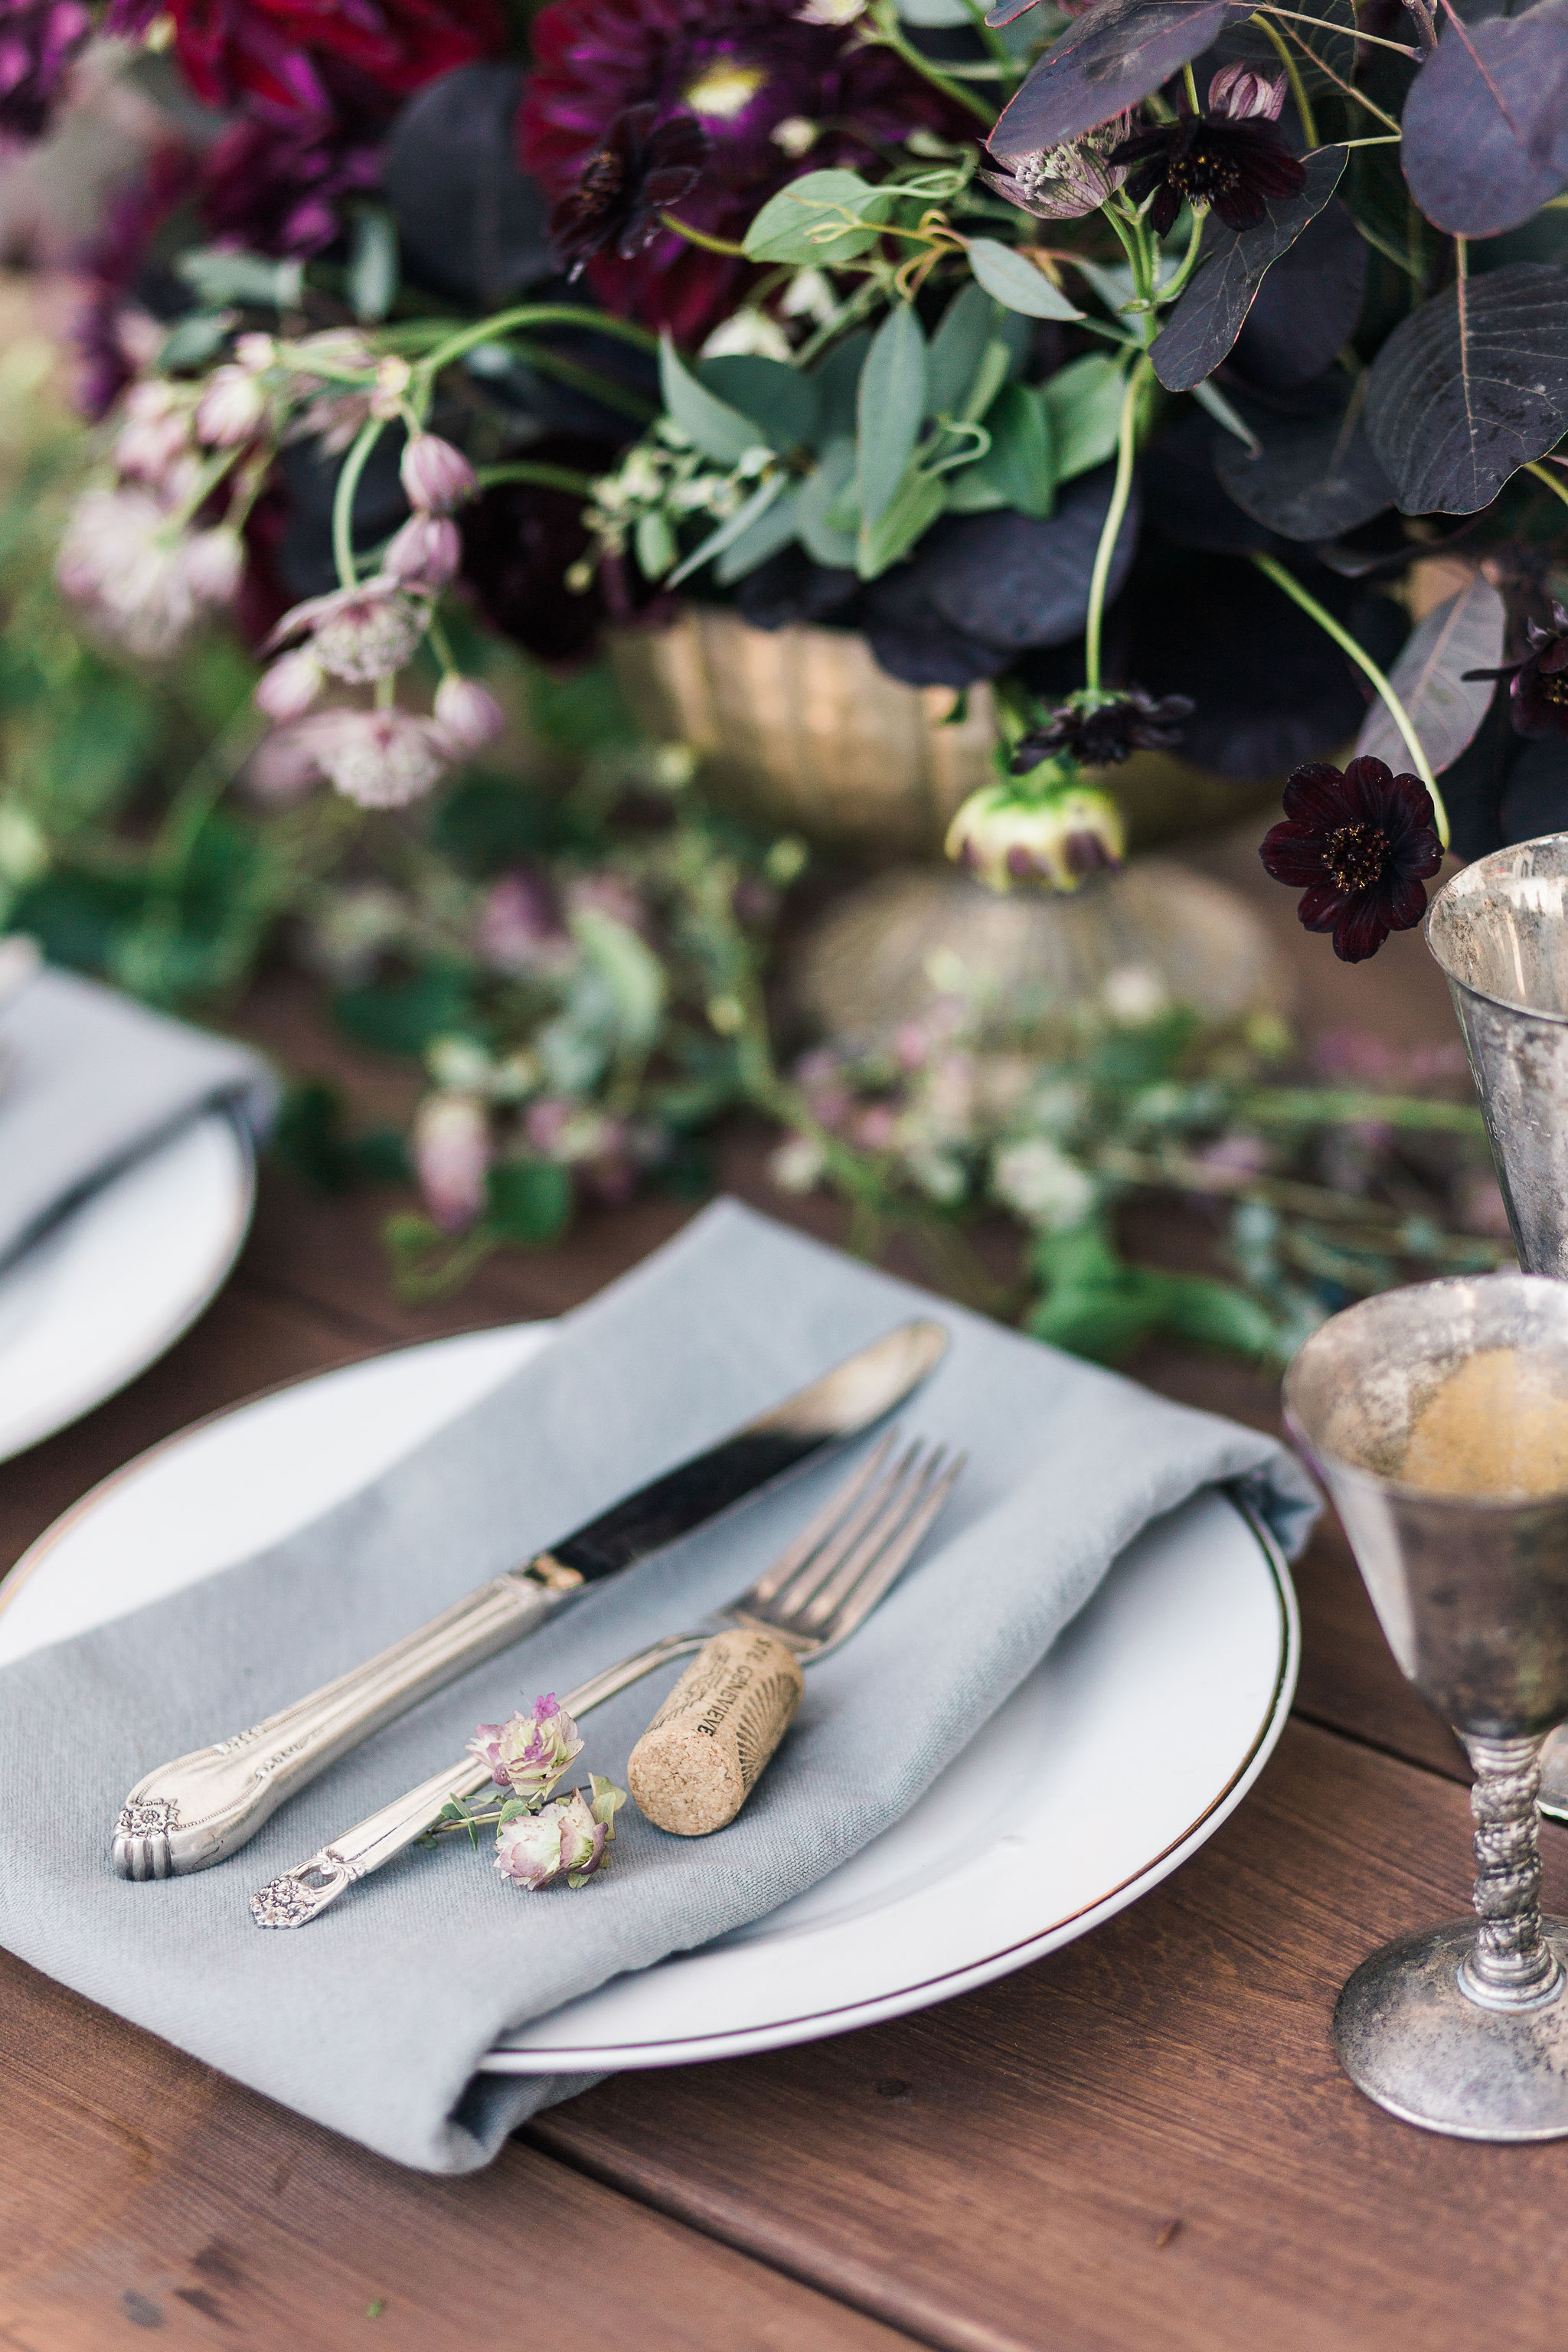 Georgia-Ruth-Photography-Flat-Lays-Table-Details-130.jpg